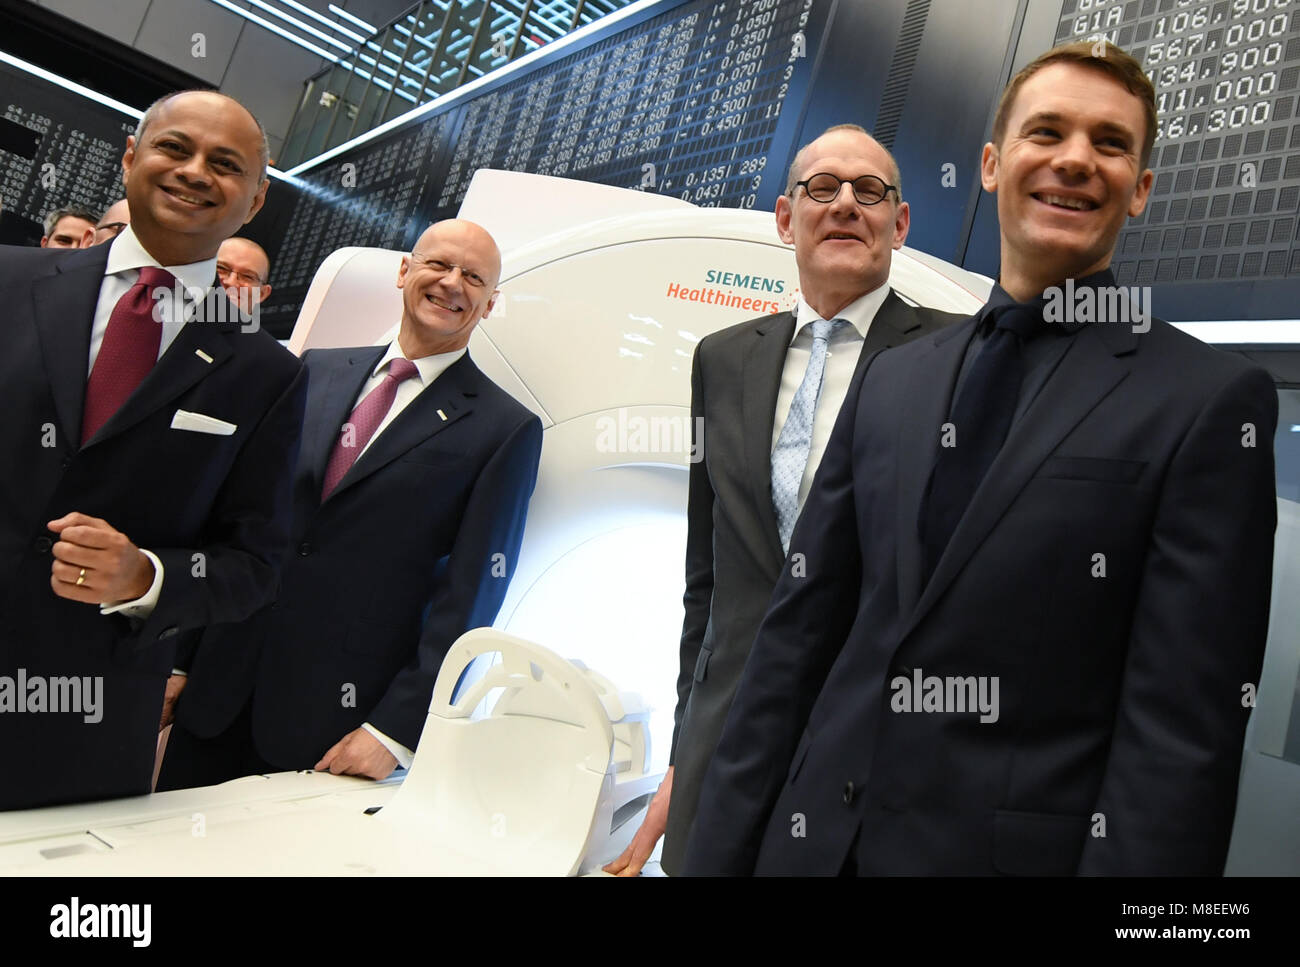 16 March 2018, Germany, Frankfurt am Main: Michael Sen (L-R), chairman of the Supervisory Board of the Siemens Healthineers Stock Photo